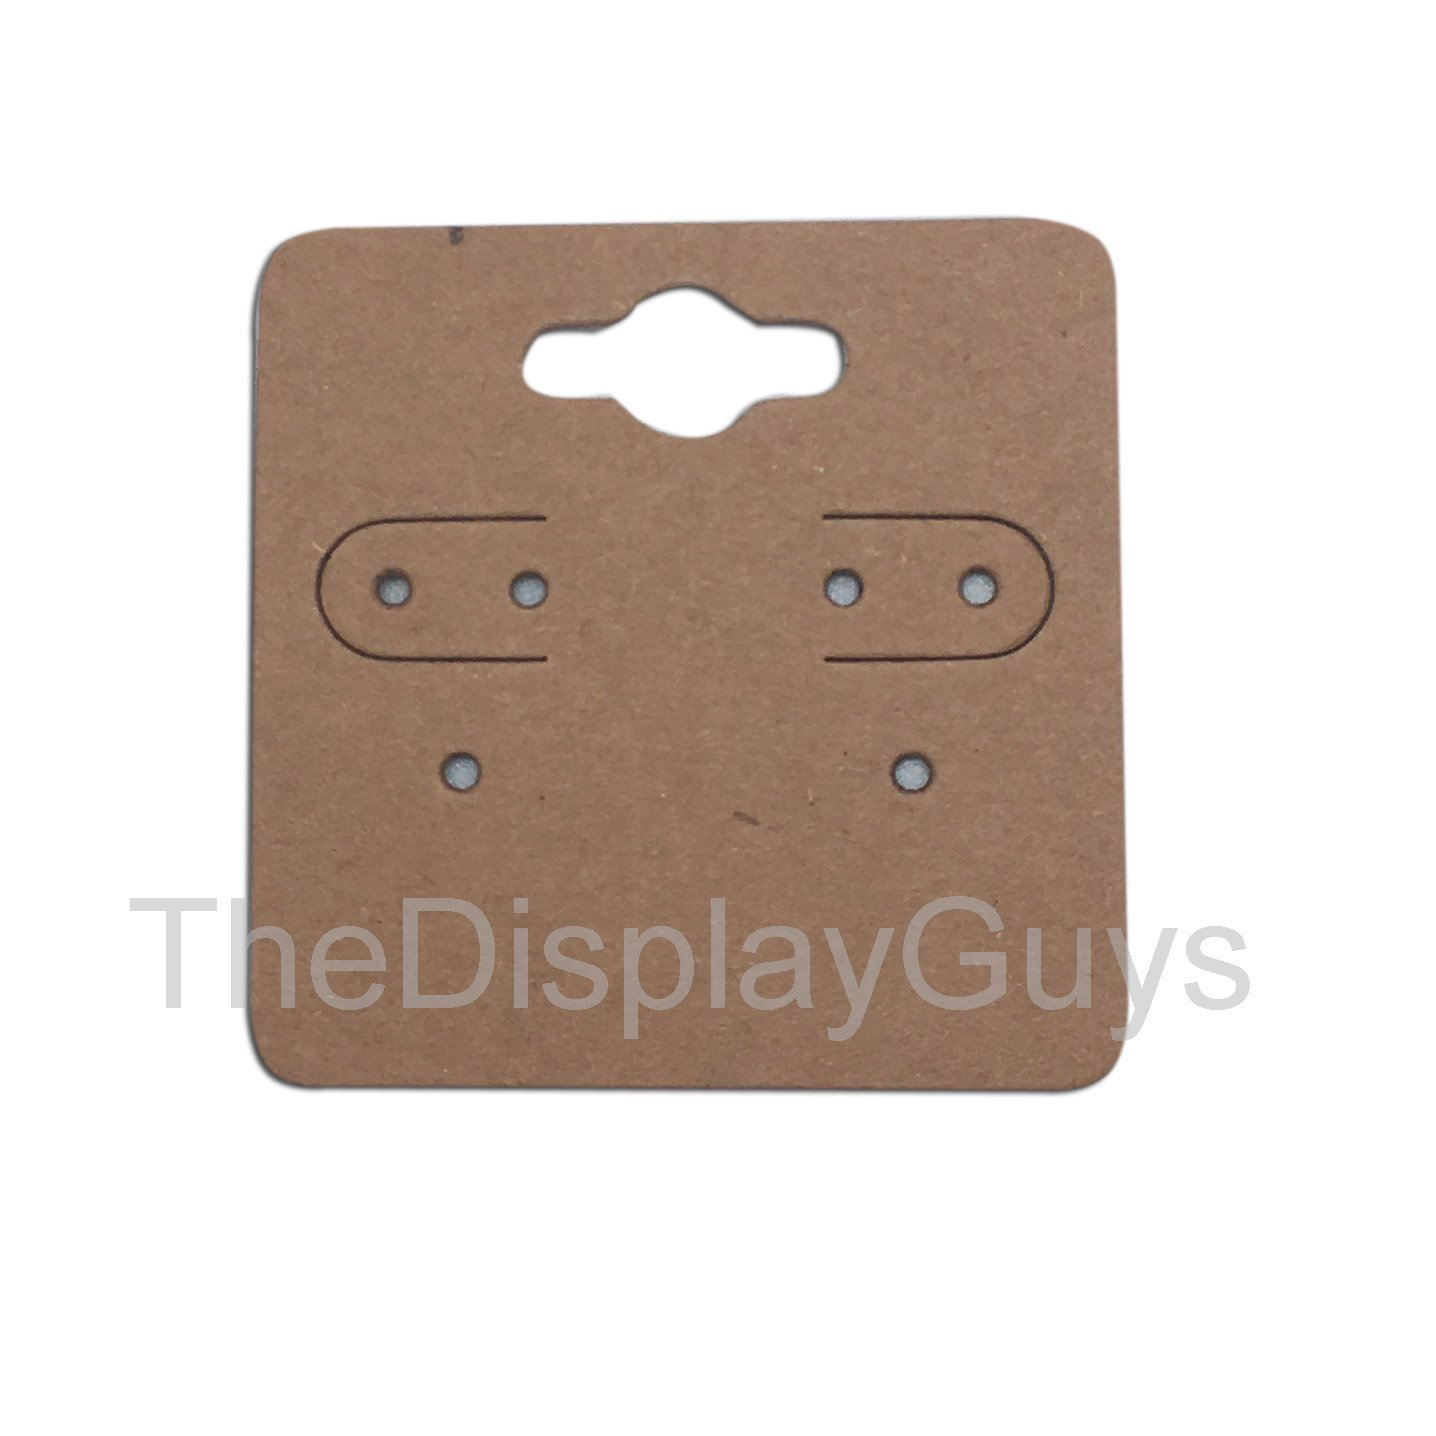 The Display Guys Pack of 100 pcs 1 7/8